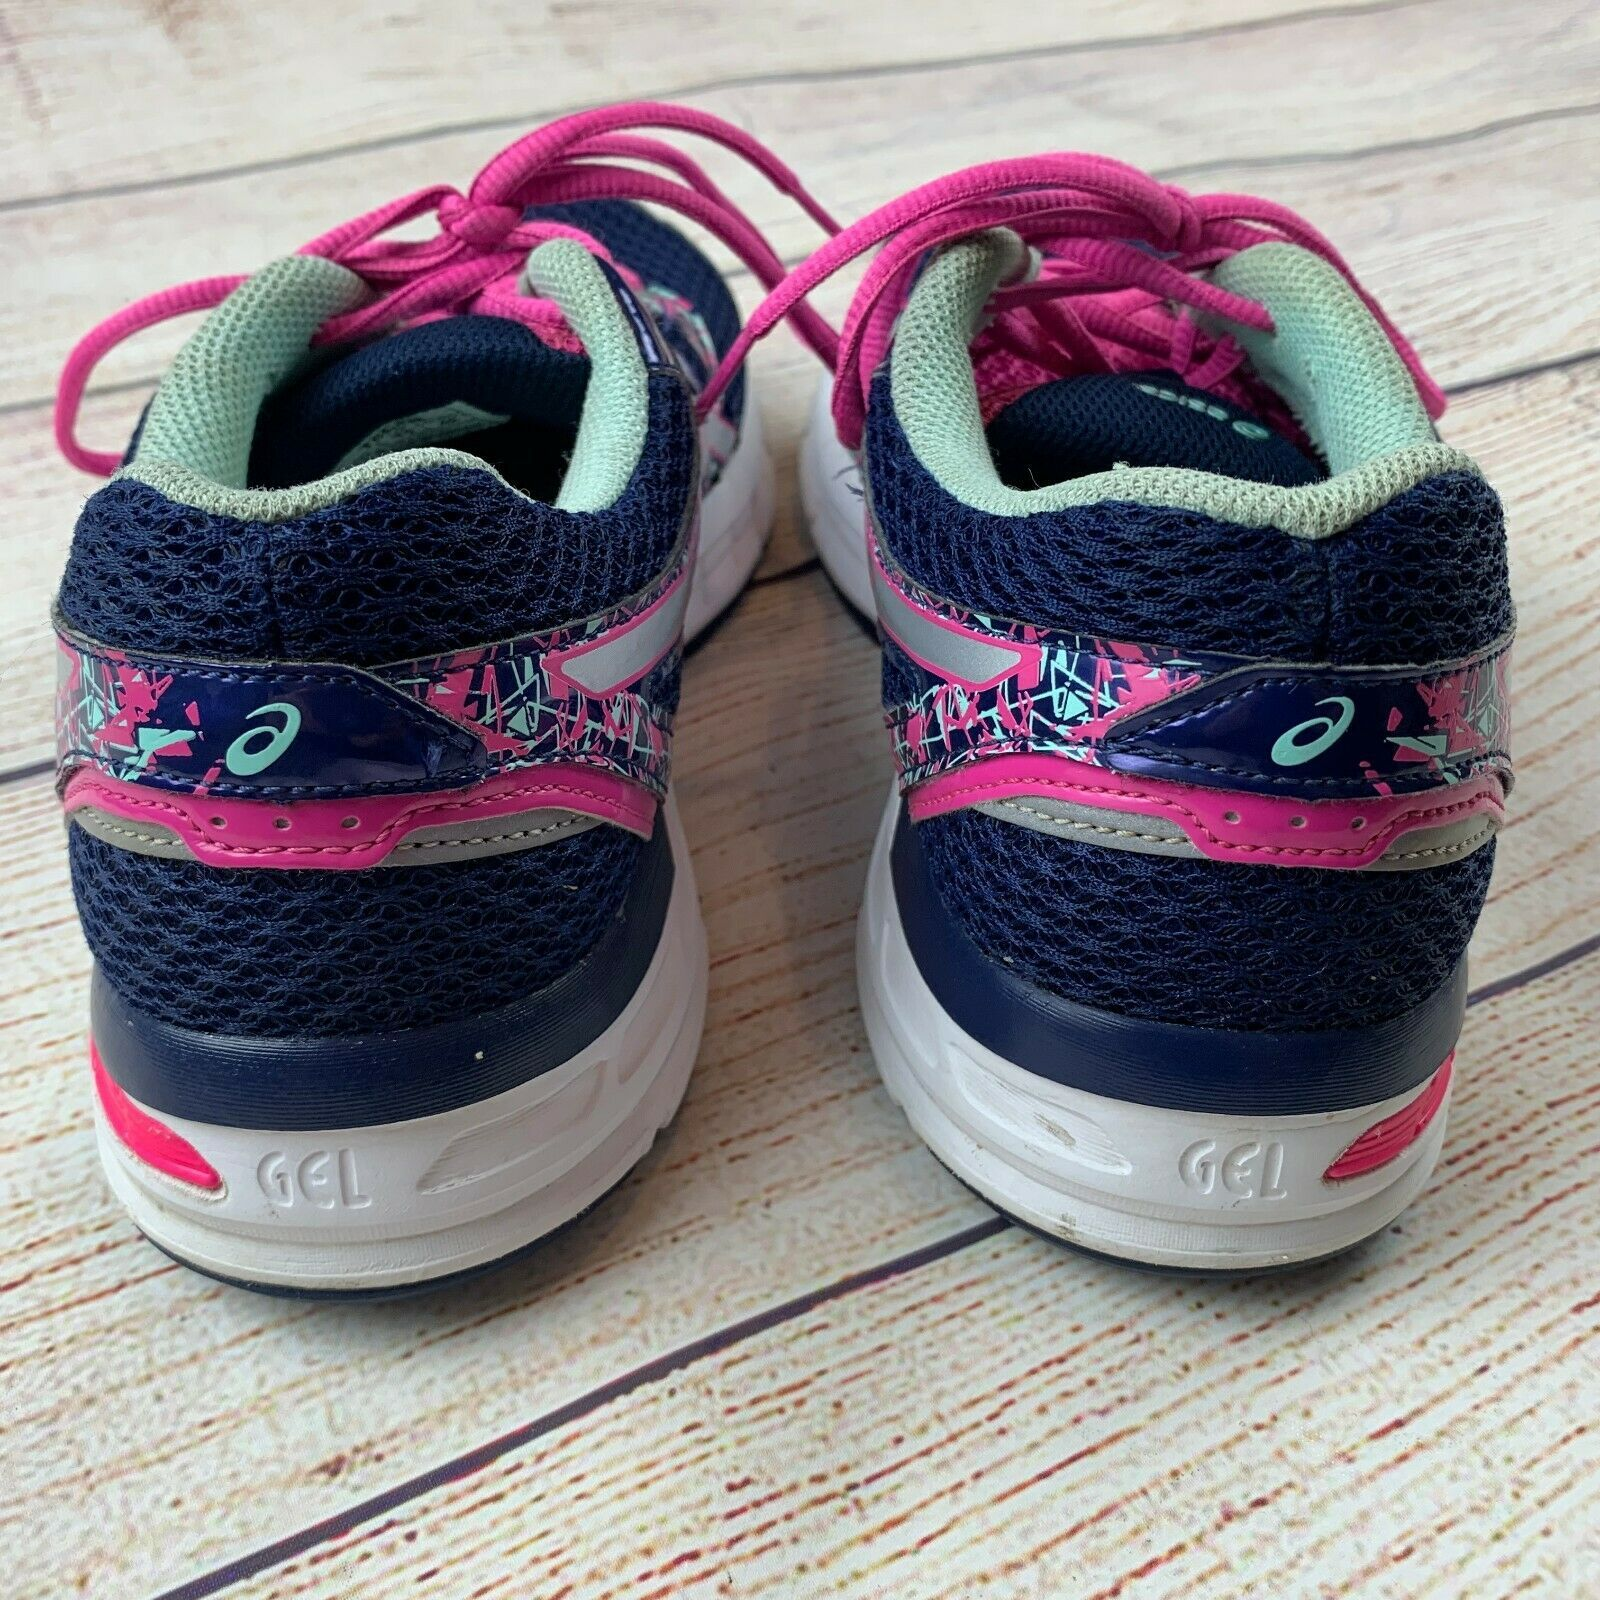 Asics womens Gel Excite 4 Navy Pink Running Shoes Sneakers 10/ 42 EUC image 4